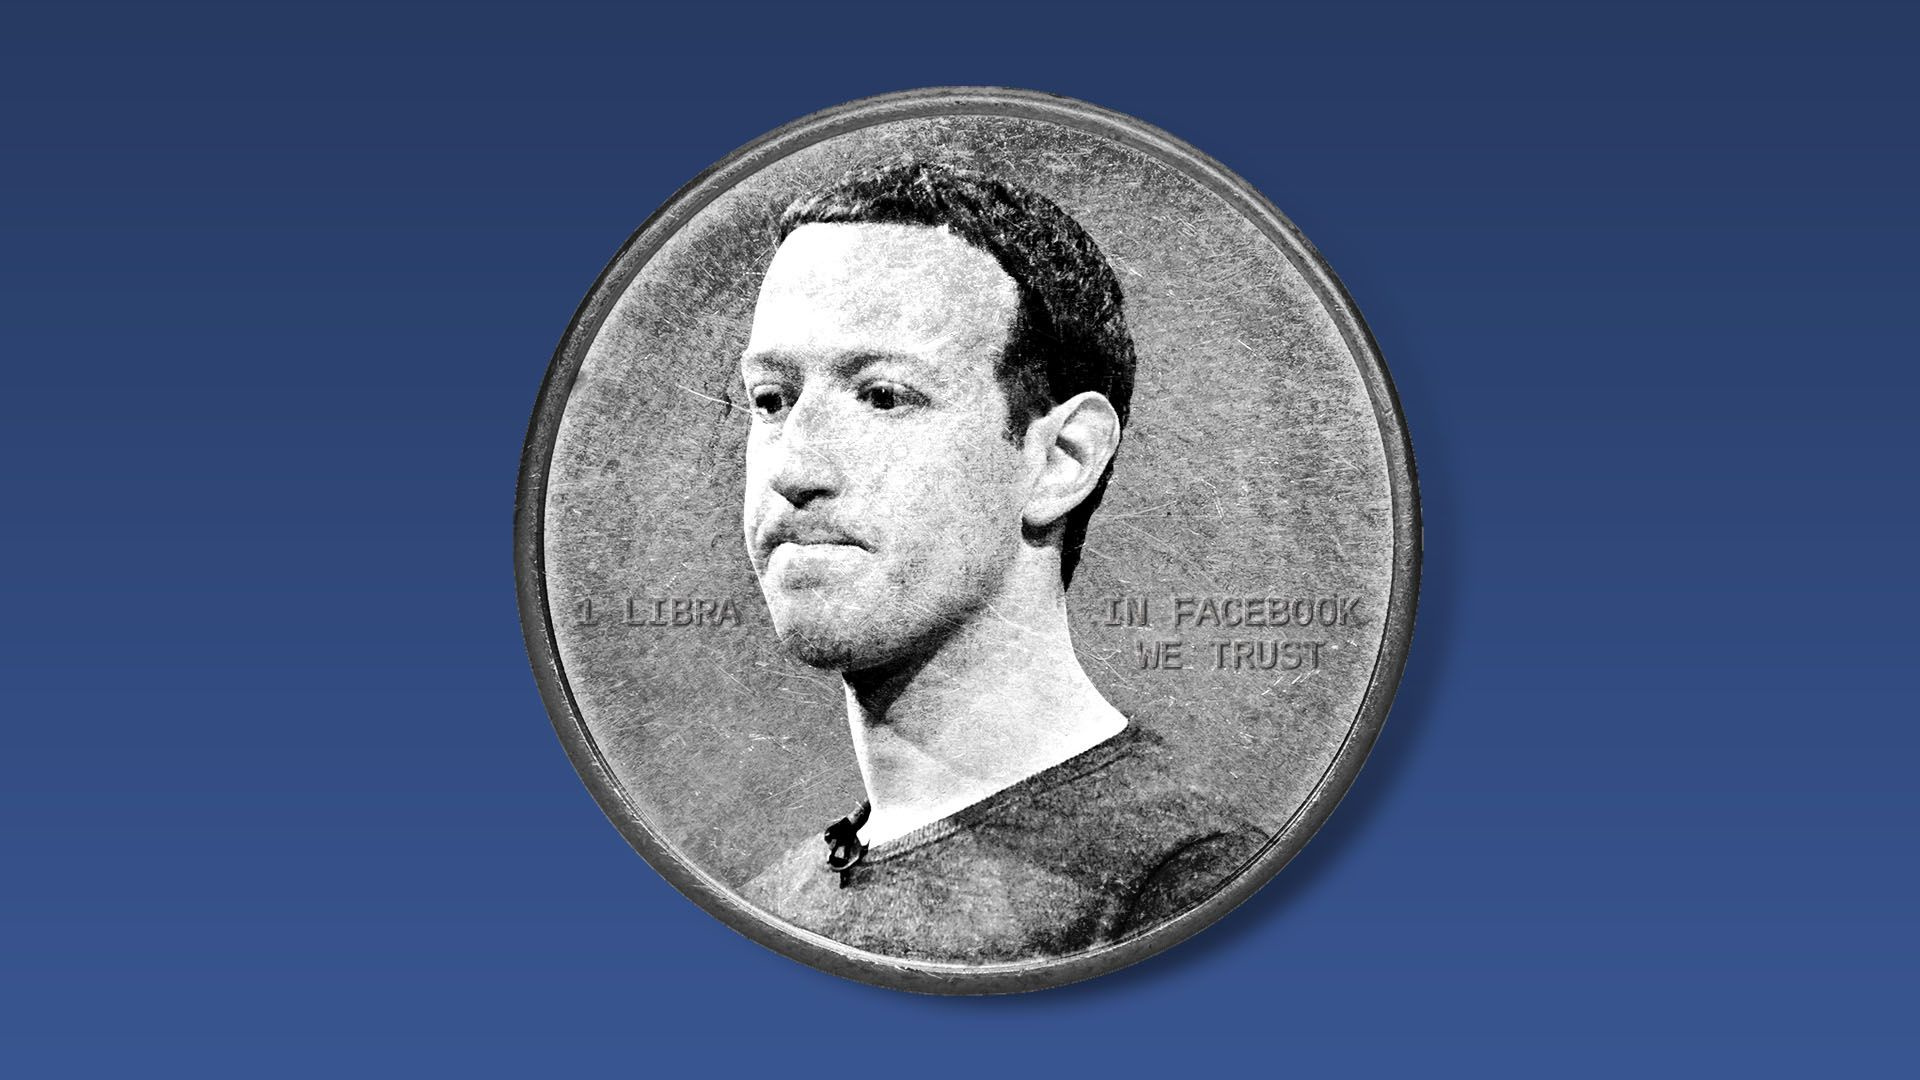 Illustration of a worried Mark Zuckerberg on a coin